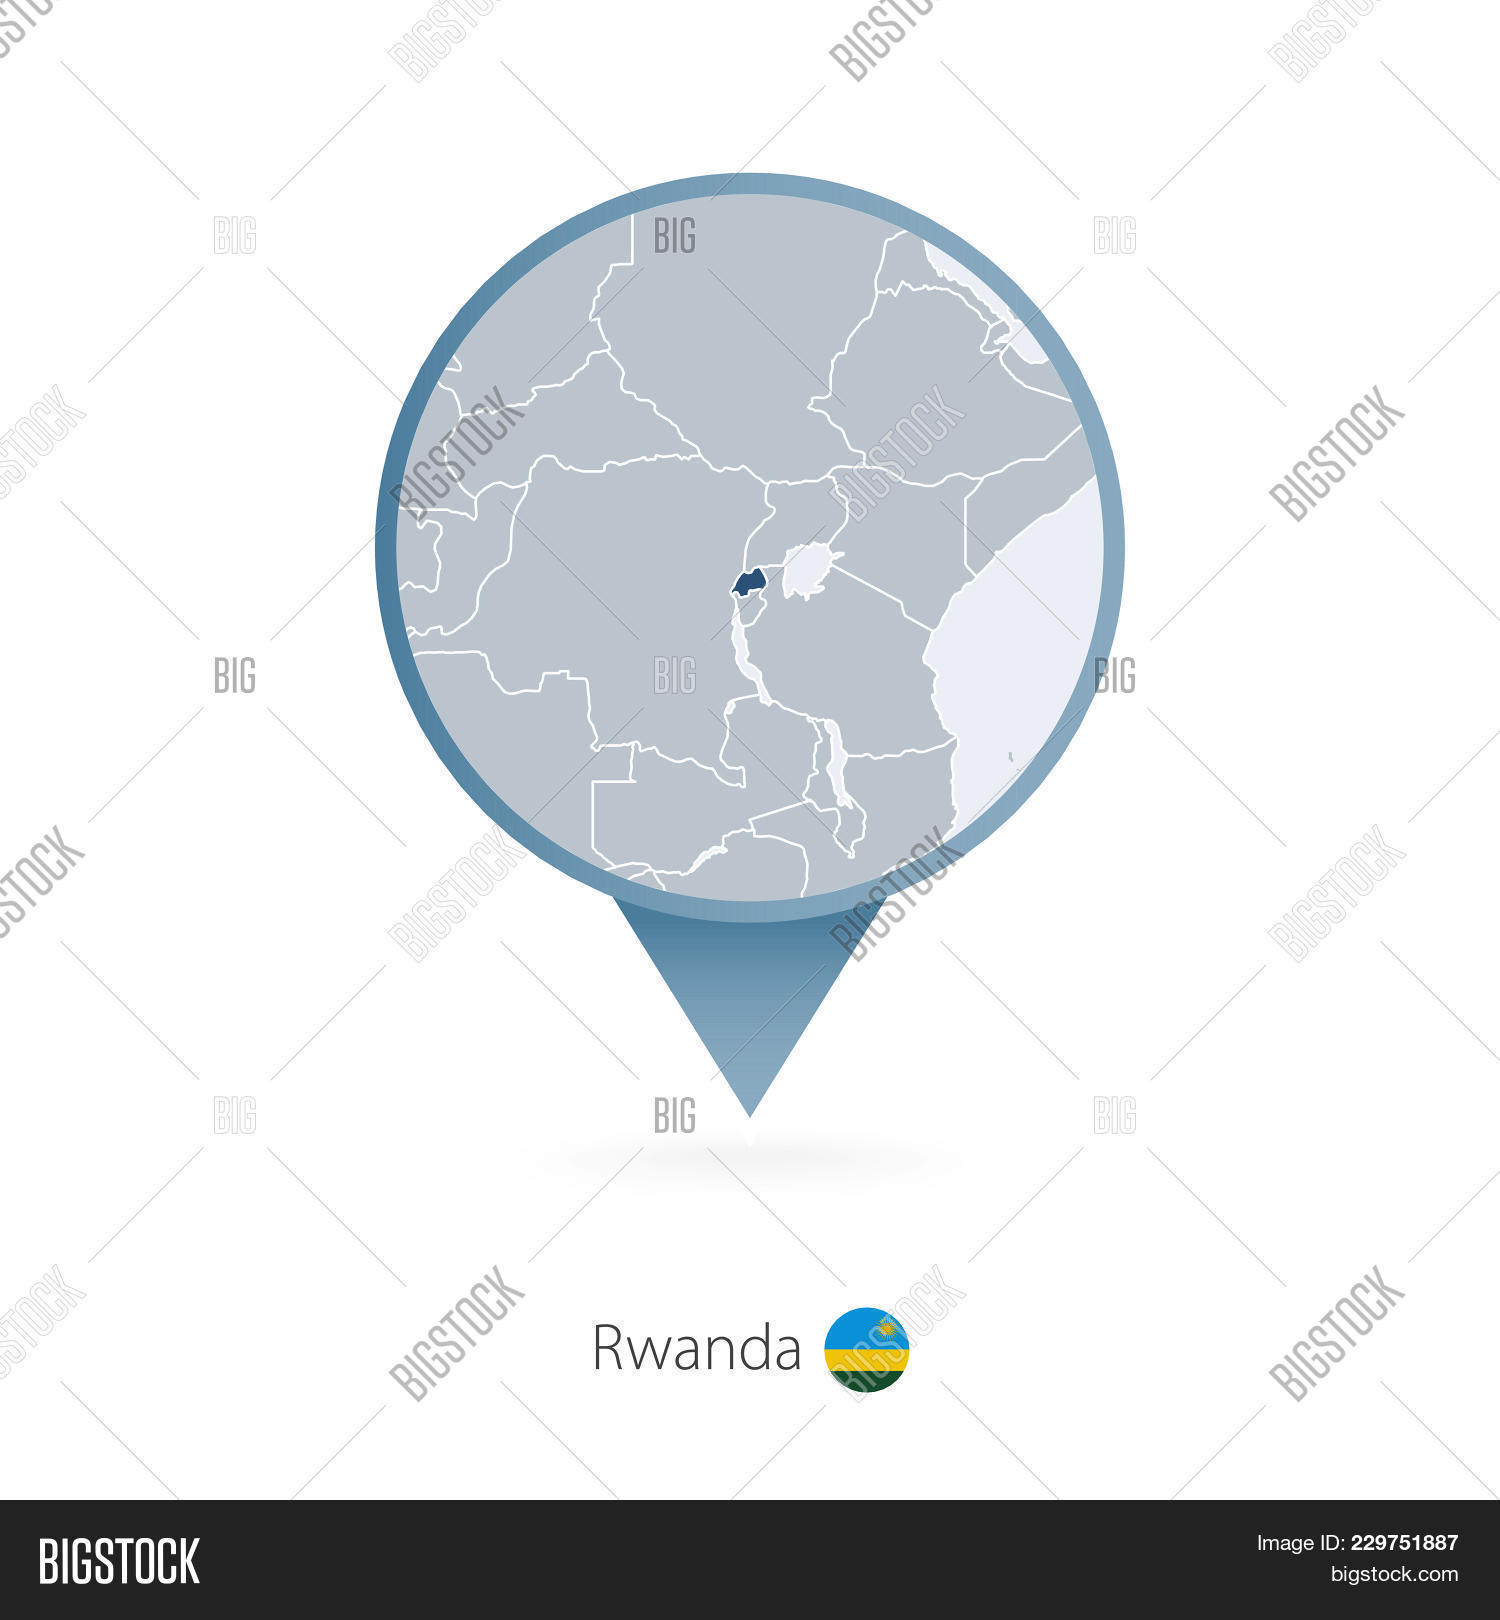 map pin with detailed map of rwanda and neighboring countries